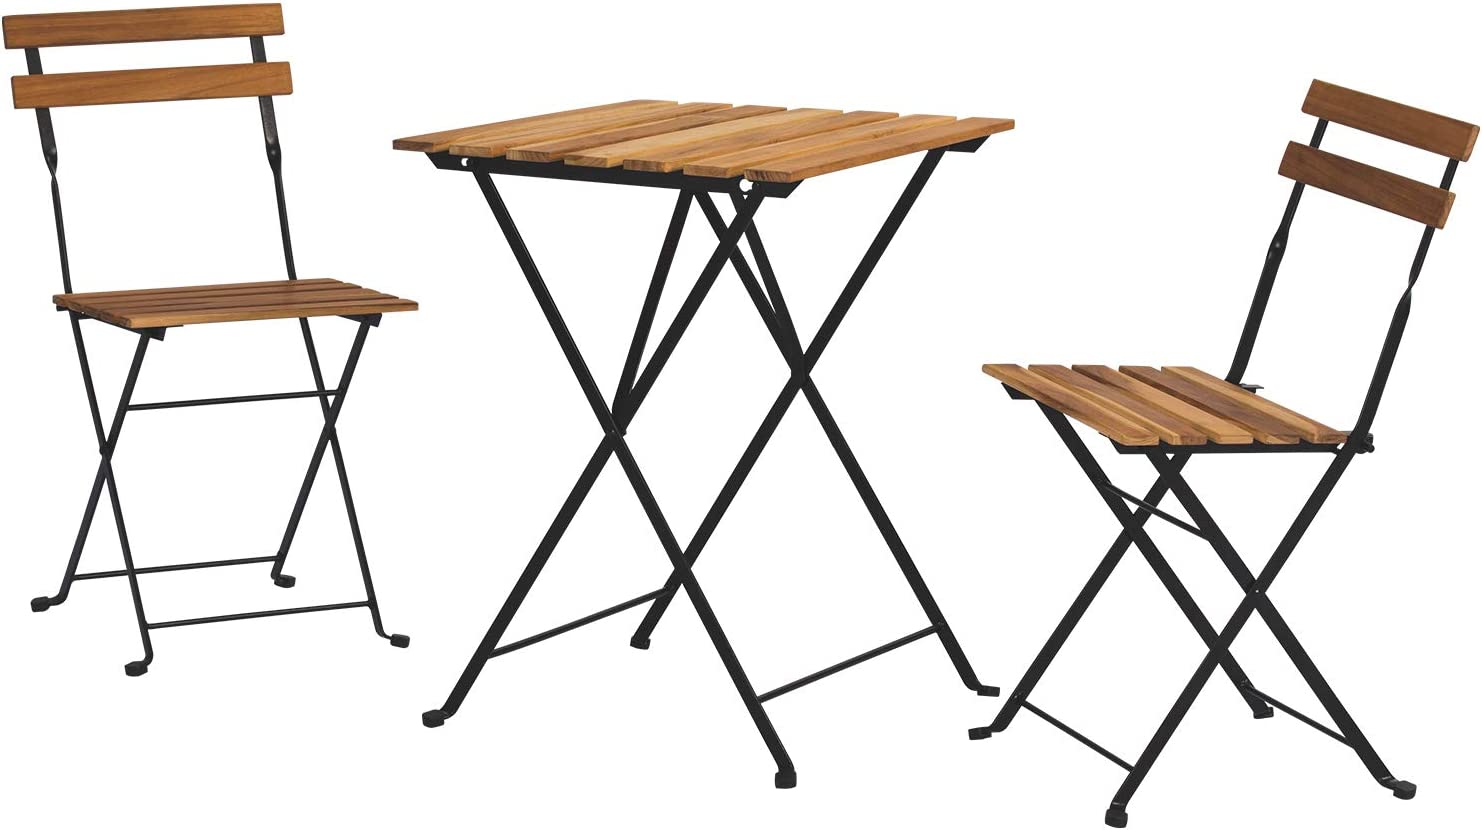 SUNBURY Outdoor 3 Piece Bistro Folding Chair and Table Set, Burlywood Patio Furniture Sitting w Wooden Top for Backyard Lawn Balcony